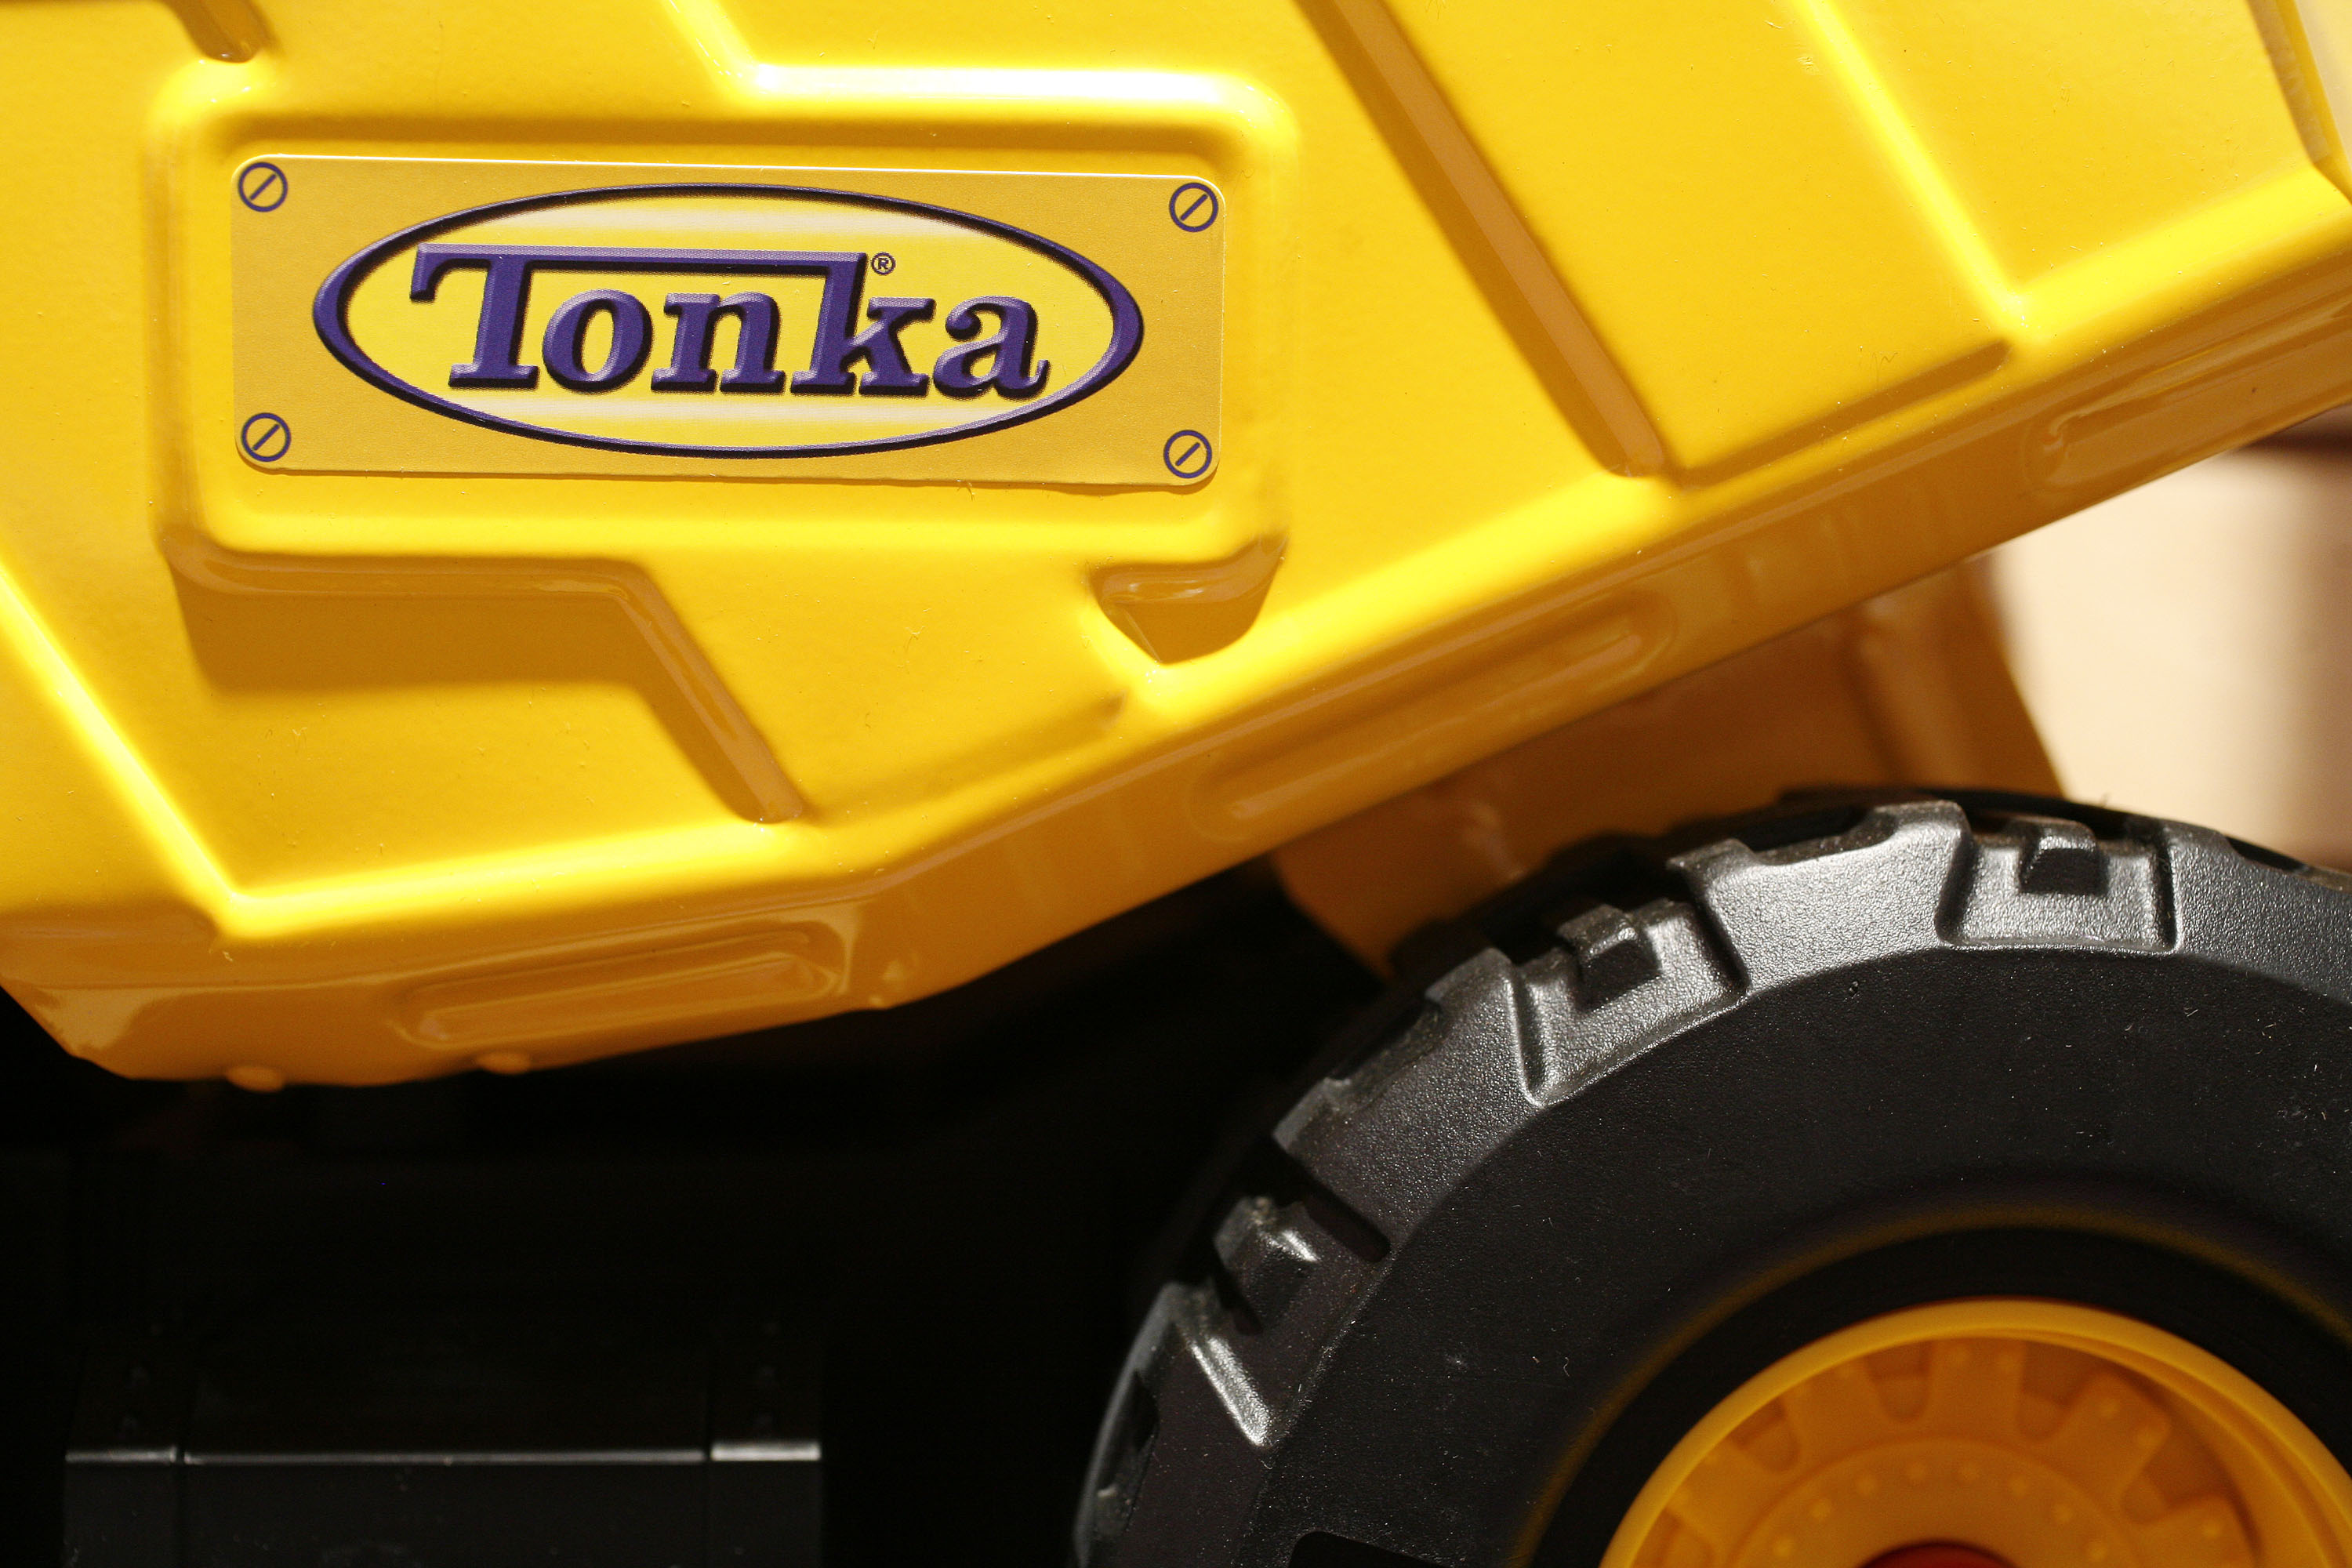 A Tonka truck sits on display in the Hasbro showroom during the International Toy Fair in New York.